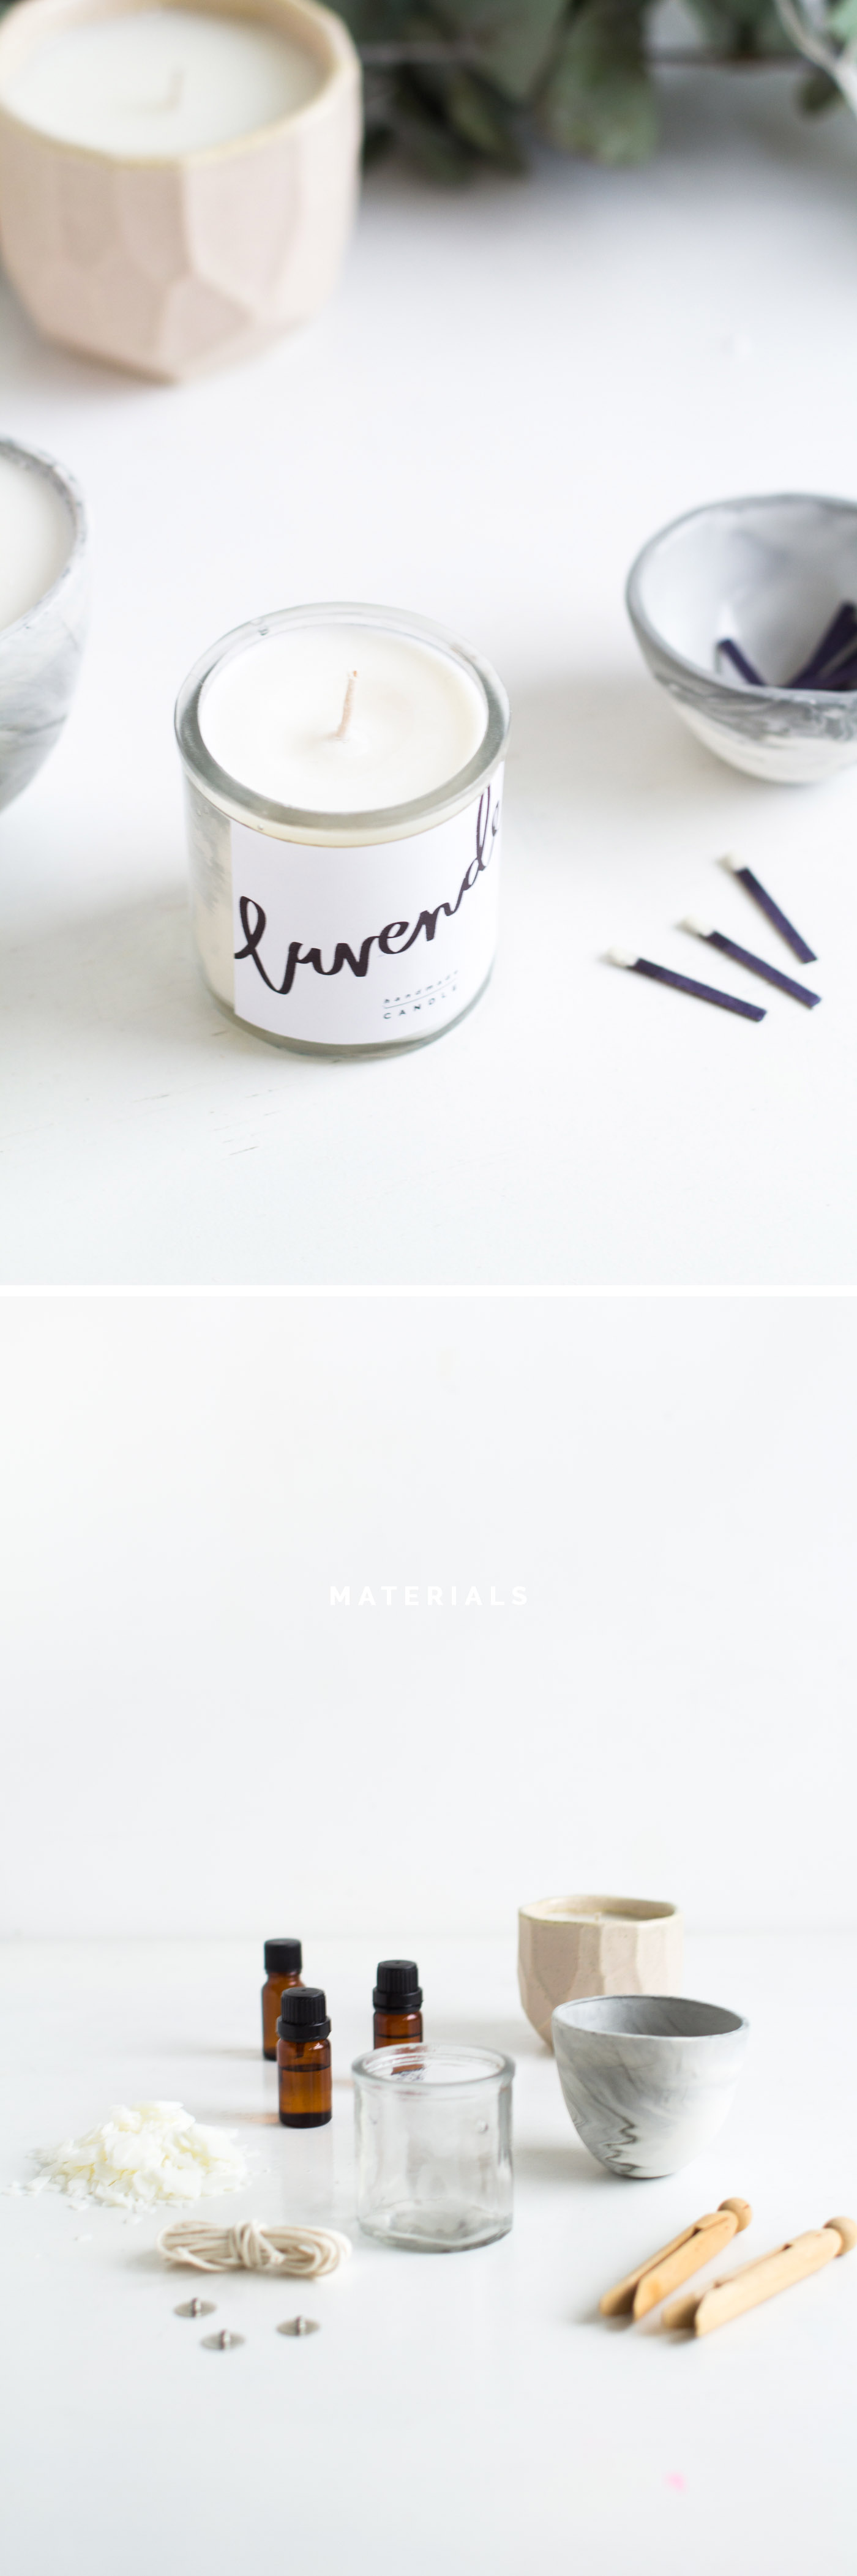 DIY Scented Candle Gifts & Free Printables materials | @fallfordiy